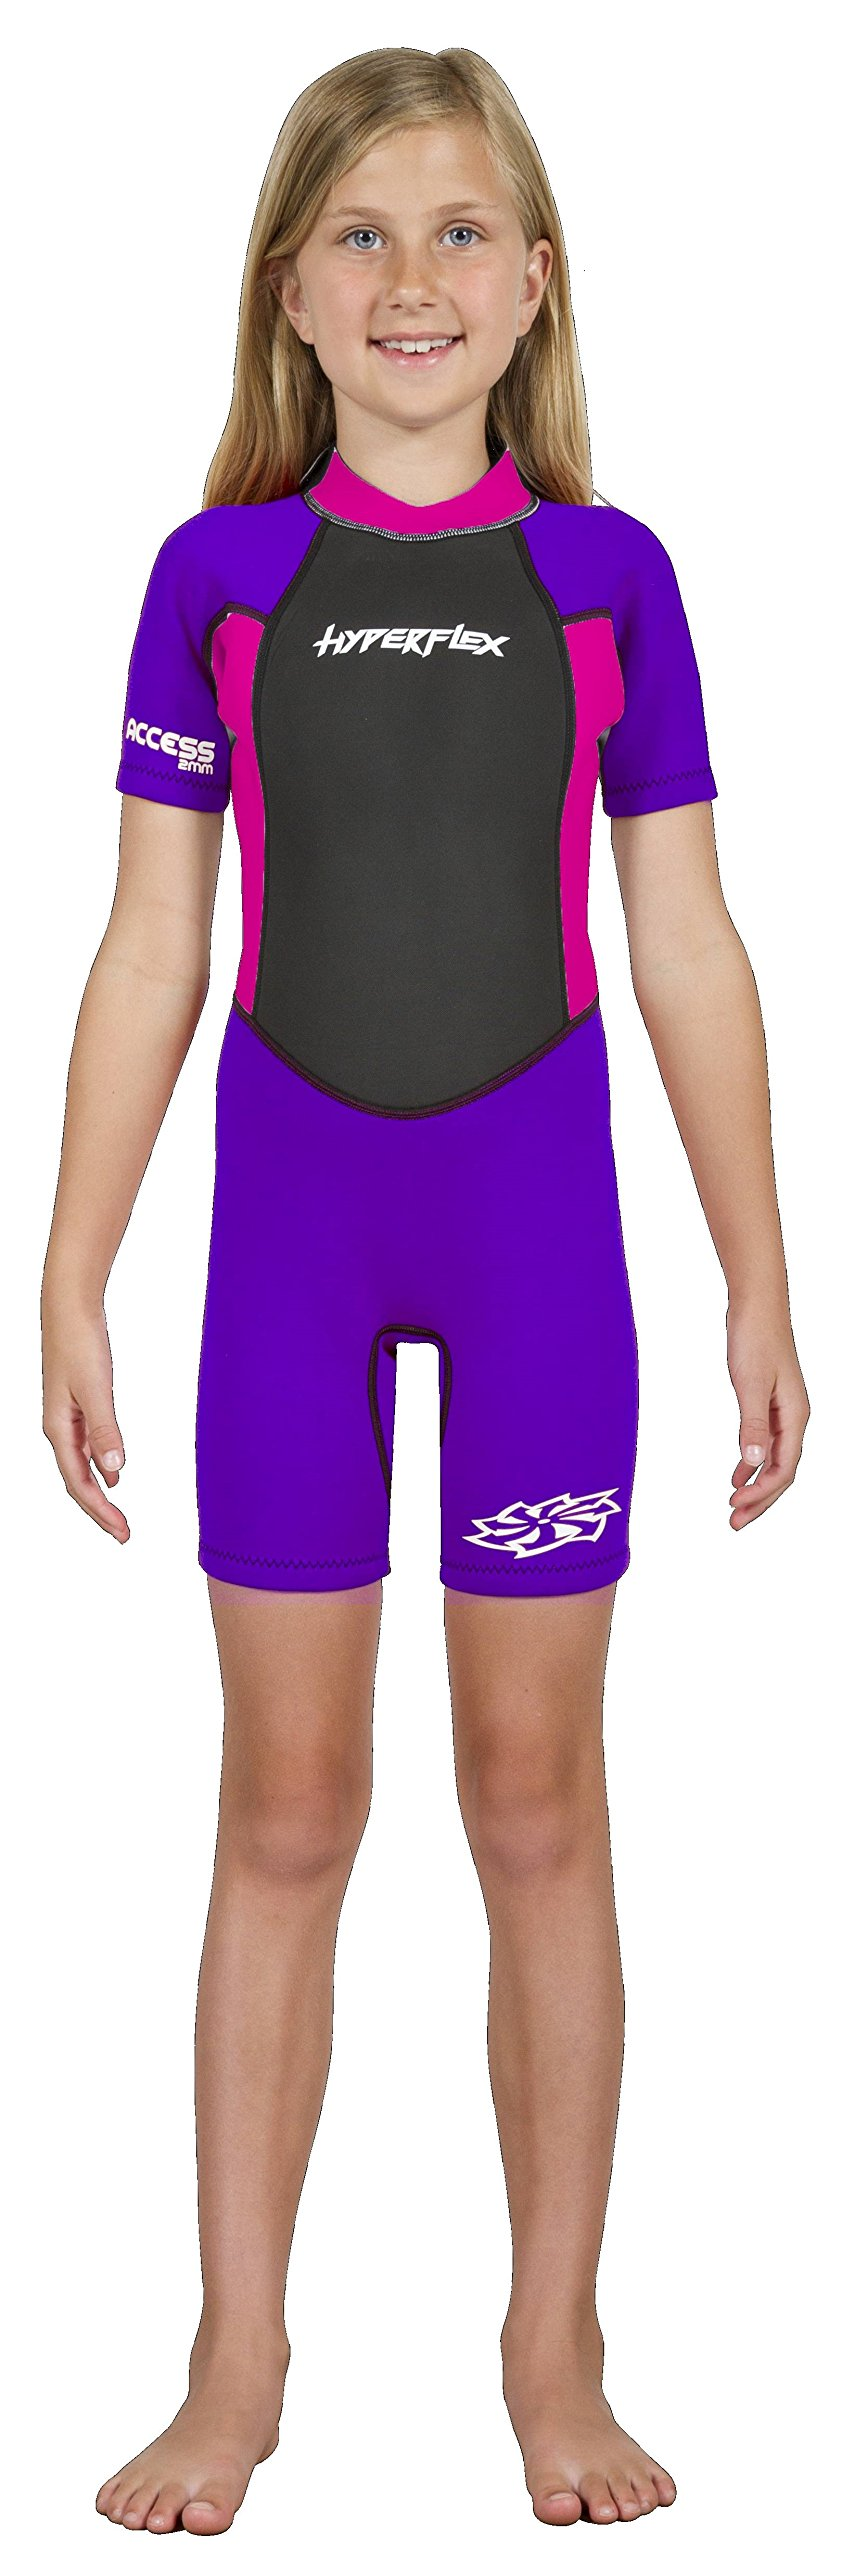 Hyperflex Access Child's Backzip Shorty Wetsuit - Warm, Comfortable Kid's Springsuit with 4-Way Stretch Neoprene and SPF Protection - Adjustable Collar and Flat Lock Construction,(Purple, 6) by Hyperflex